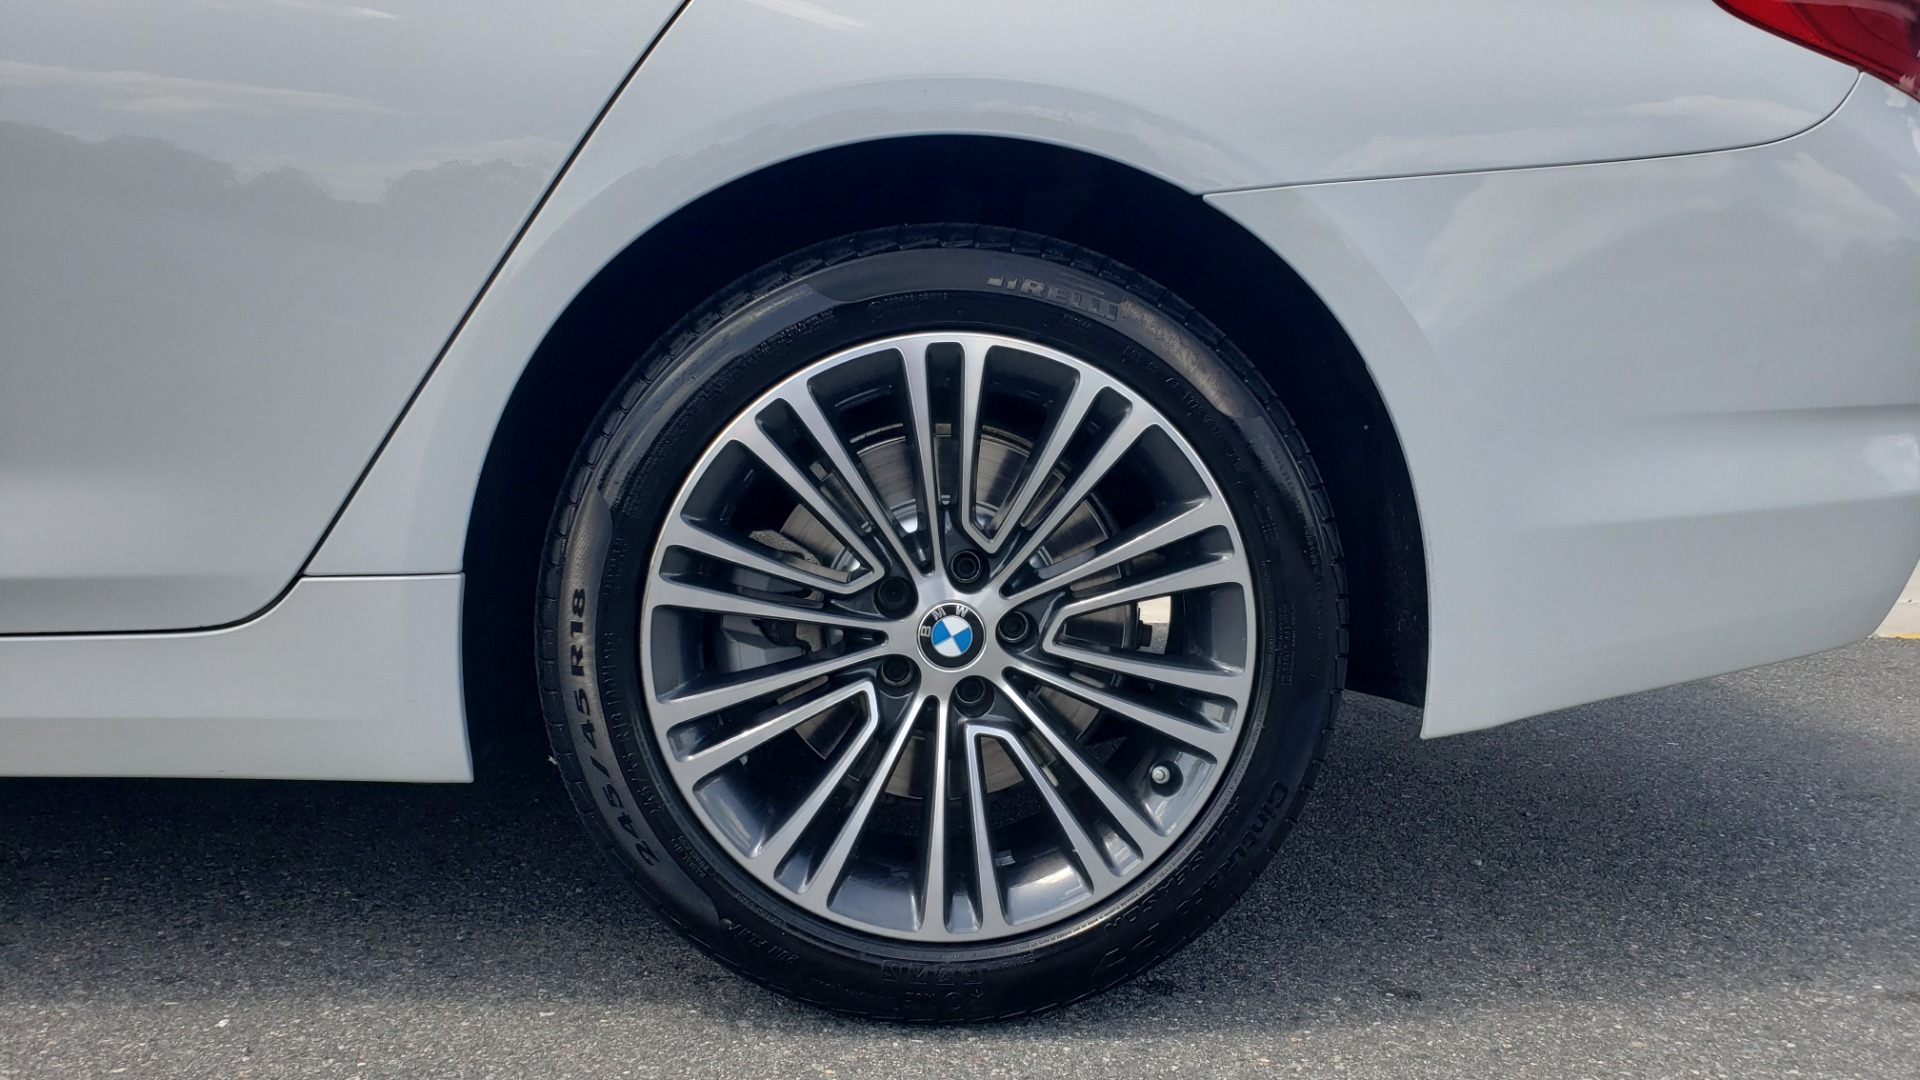 Used 2018 BMW 5 SERIES 530I XDRIVE PREMIUM / PARK ASST / NAV / SUNROOF / REARIEW for sale $37,795 at Formula Imports in Charlotte NC 28227 75